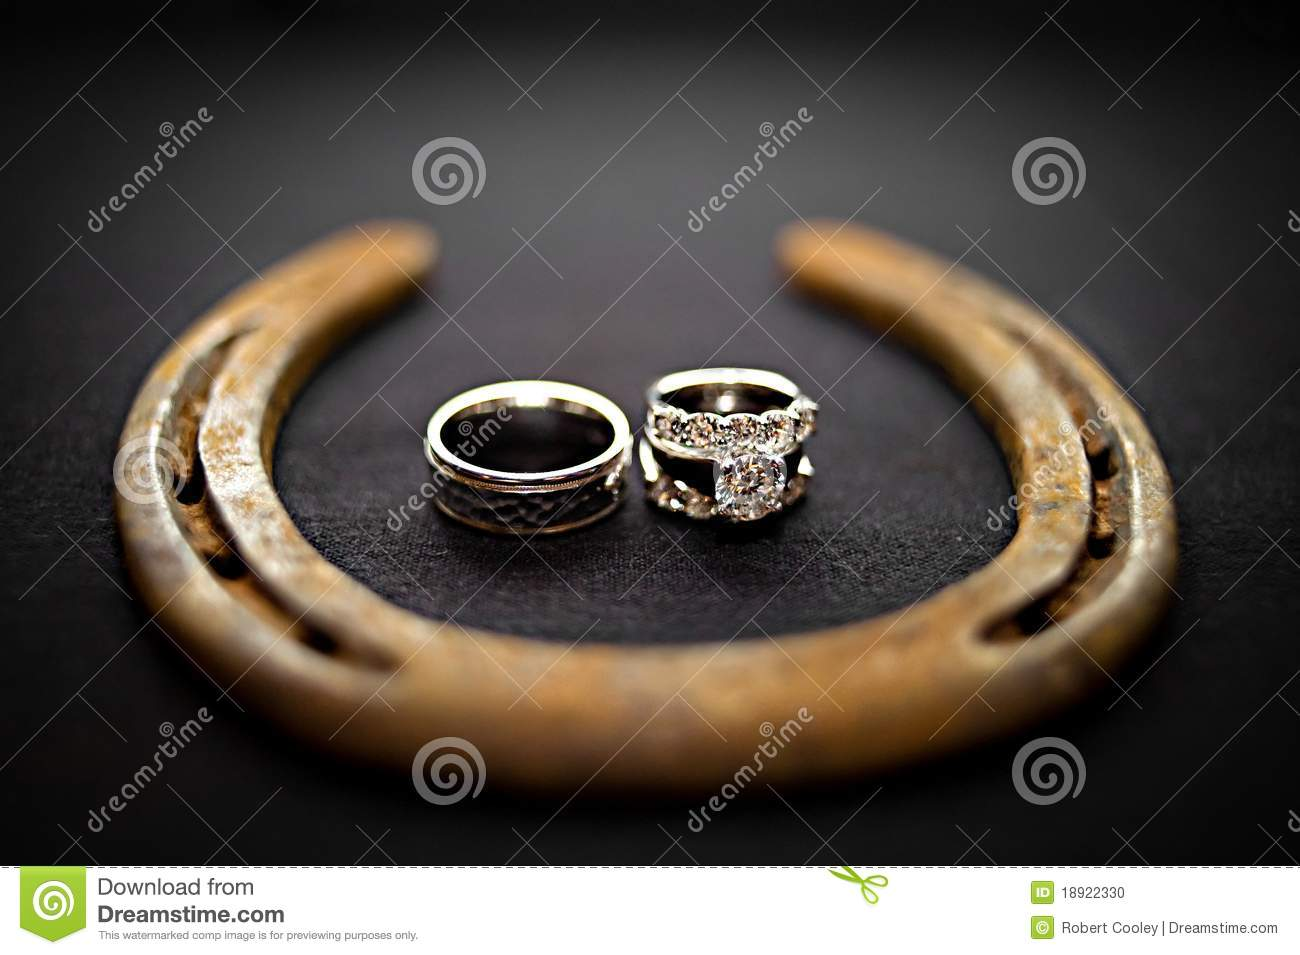 ideas matvuk wedding wonderful on elegant rings photograph ring of engagement jewelry awesome western com cowboy